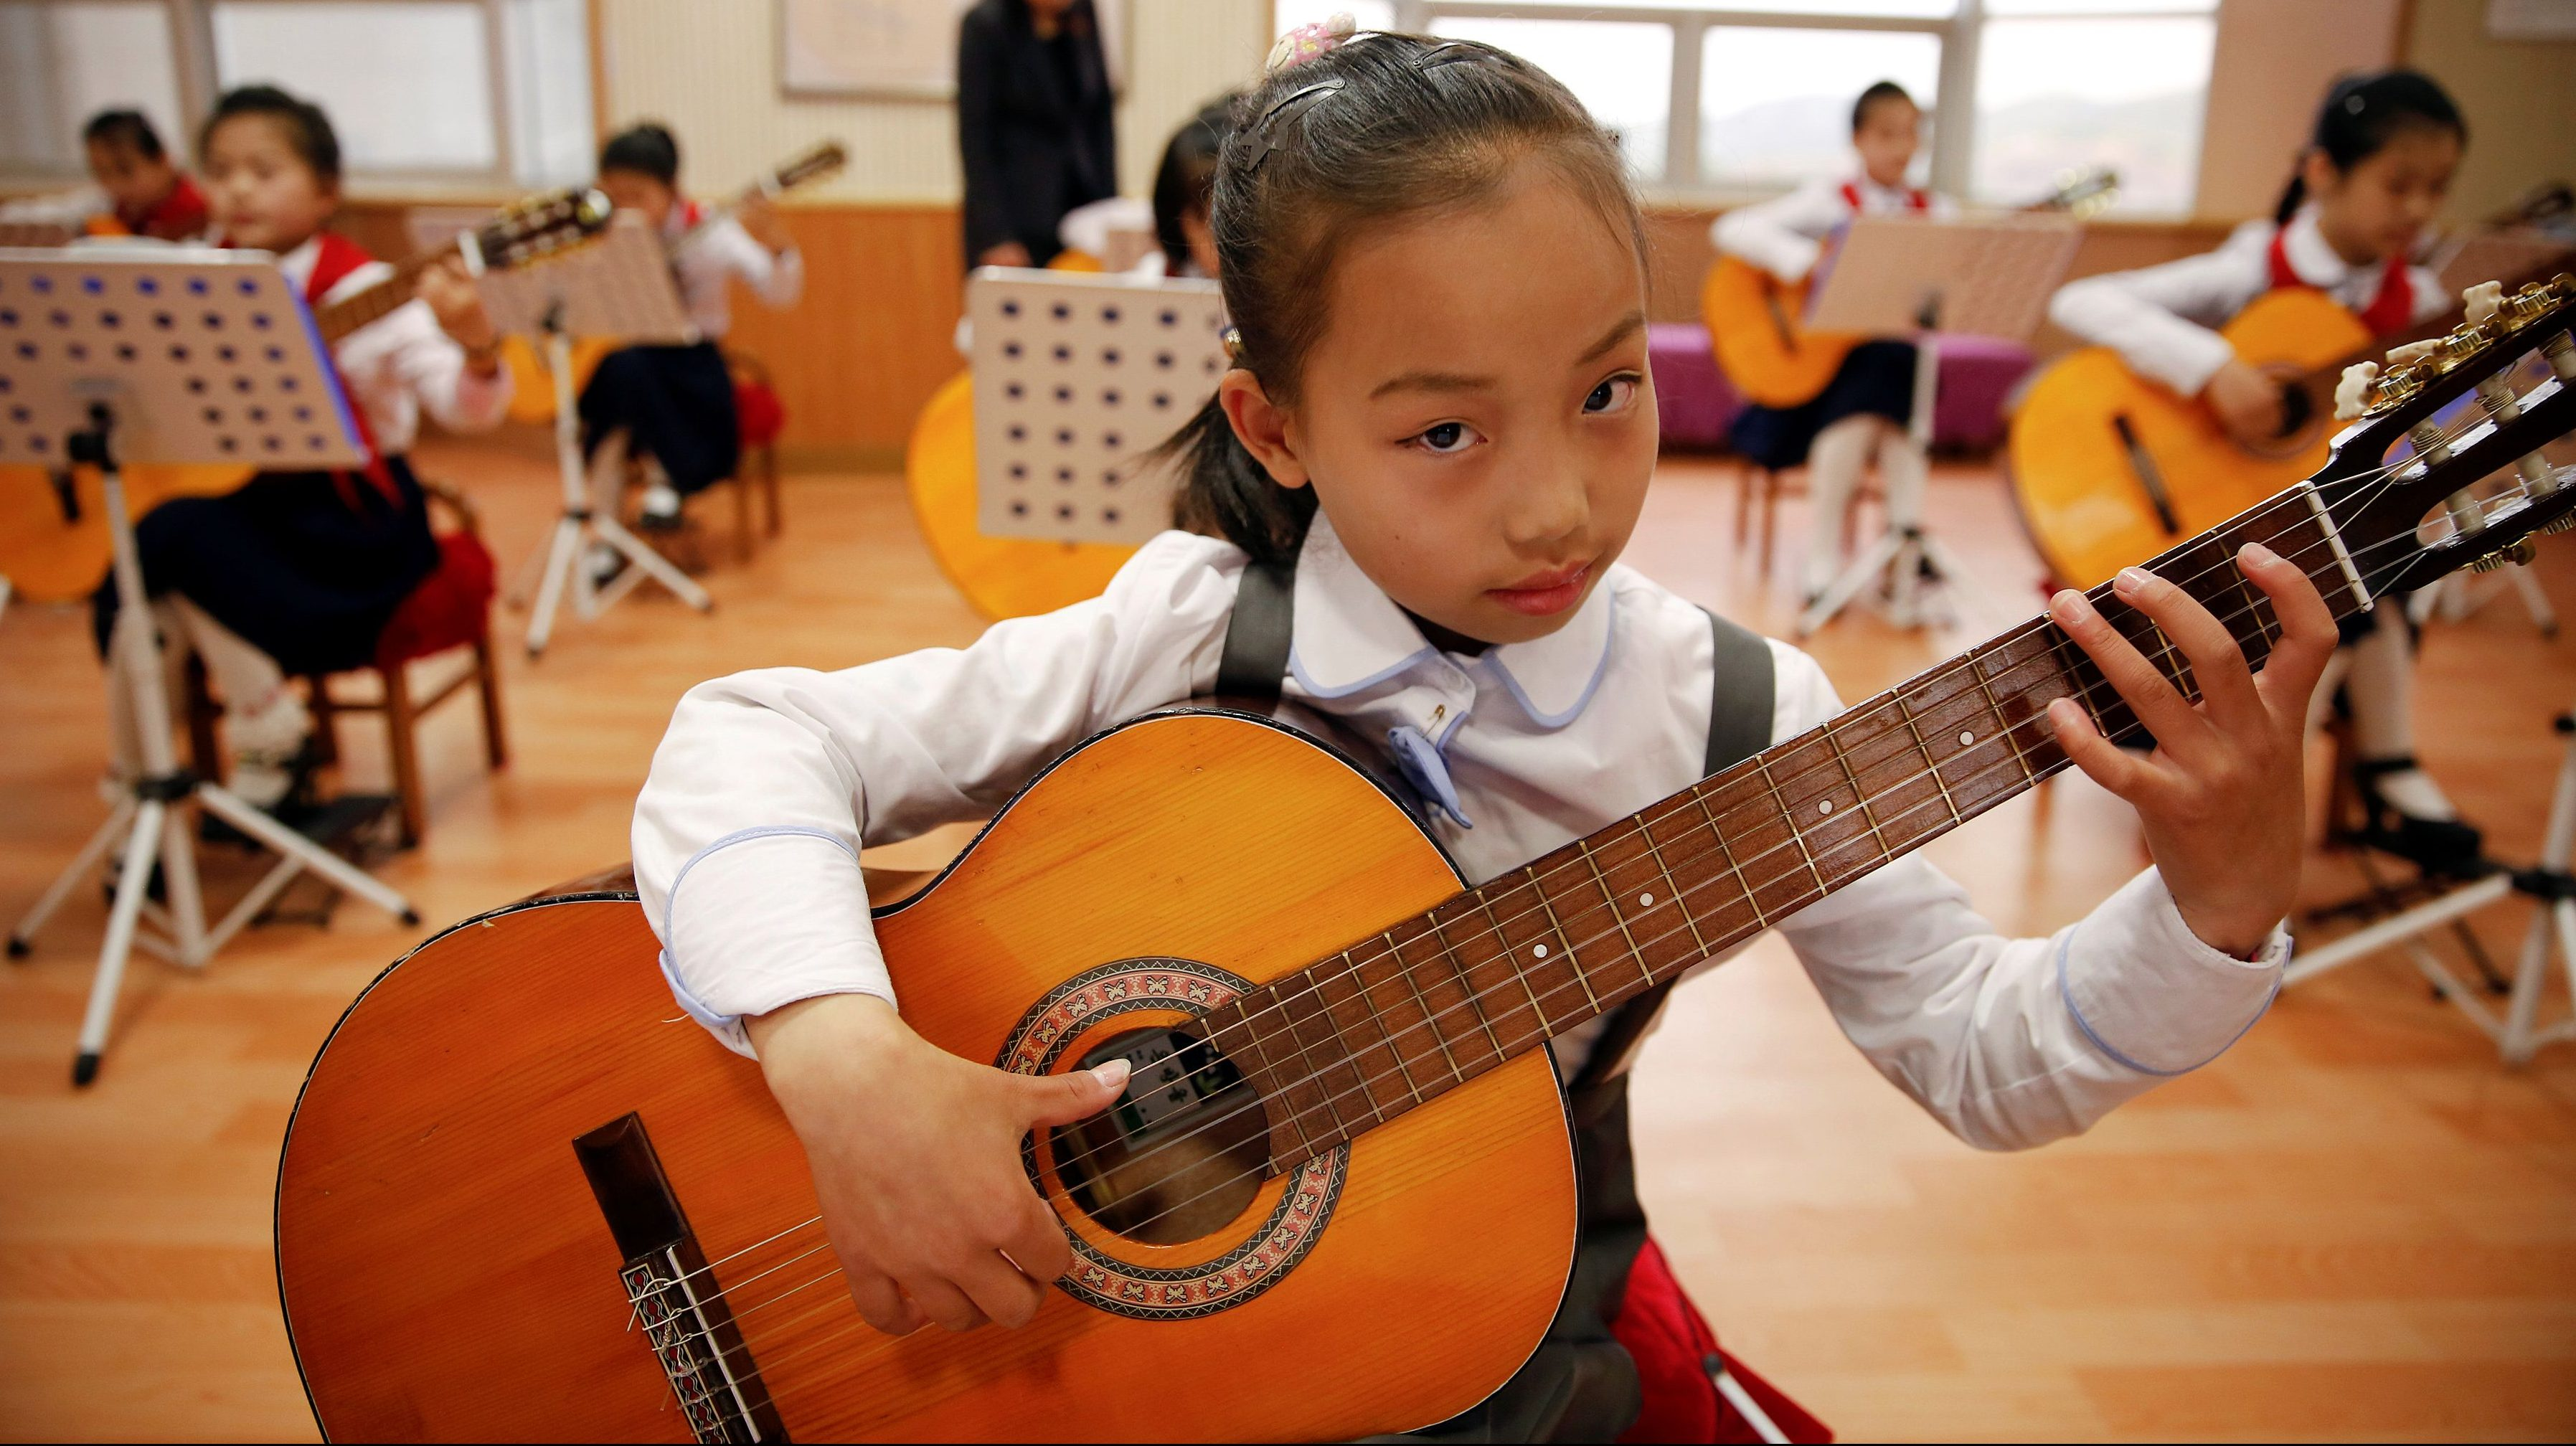 Girls play guitars at the Mangyongdae Children's Palace in central Pyongyang, North Korea, on May 5, 2016.